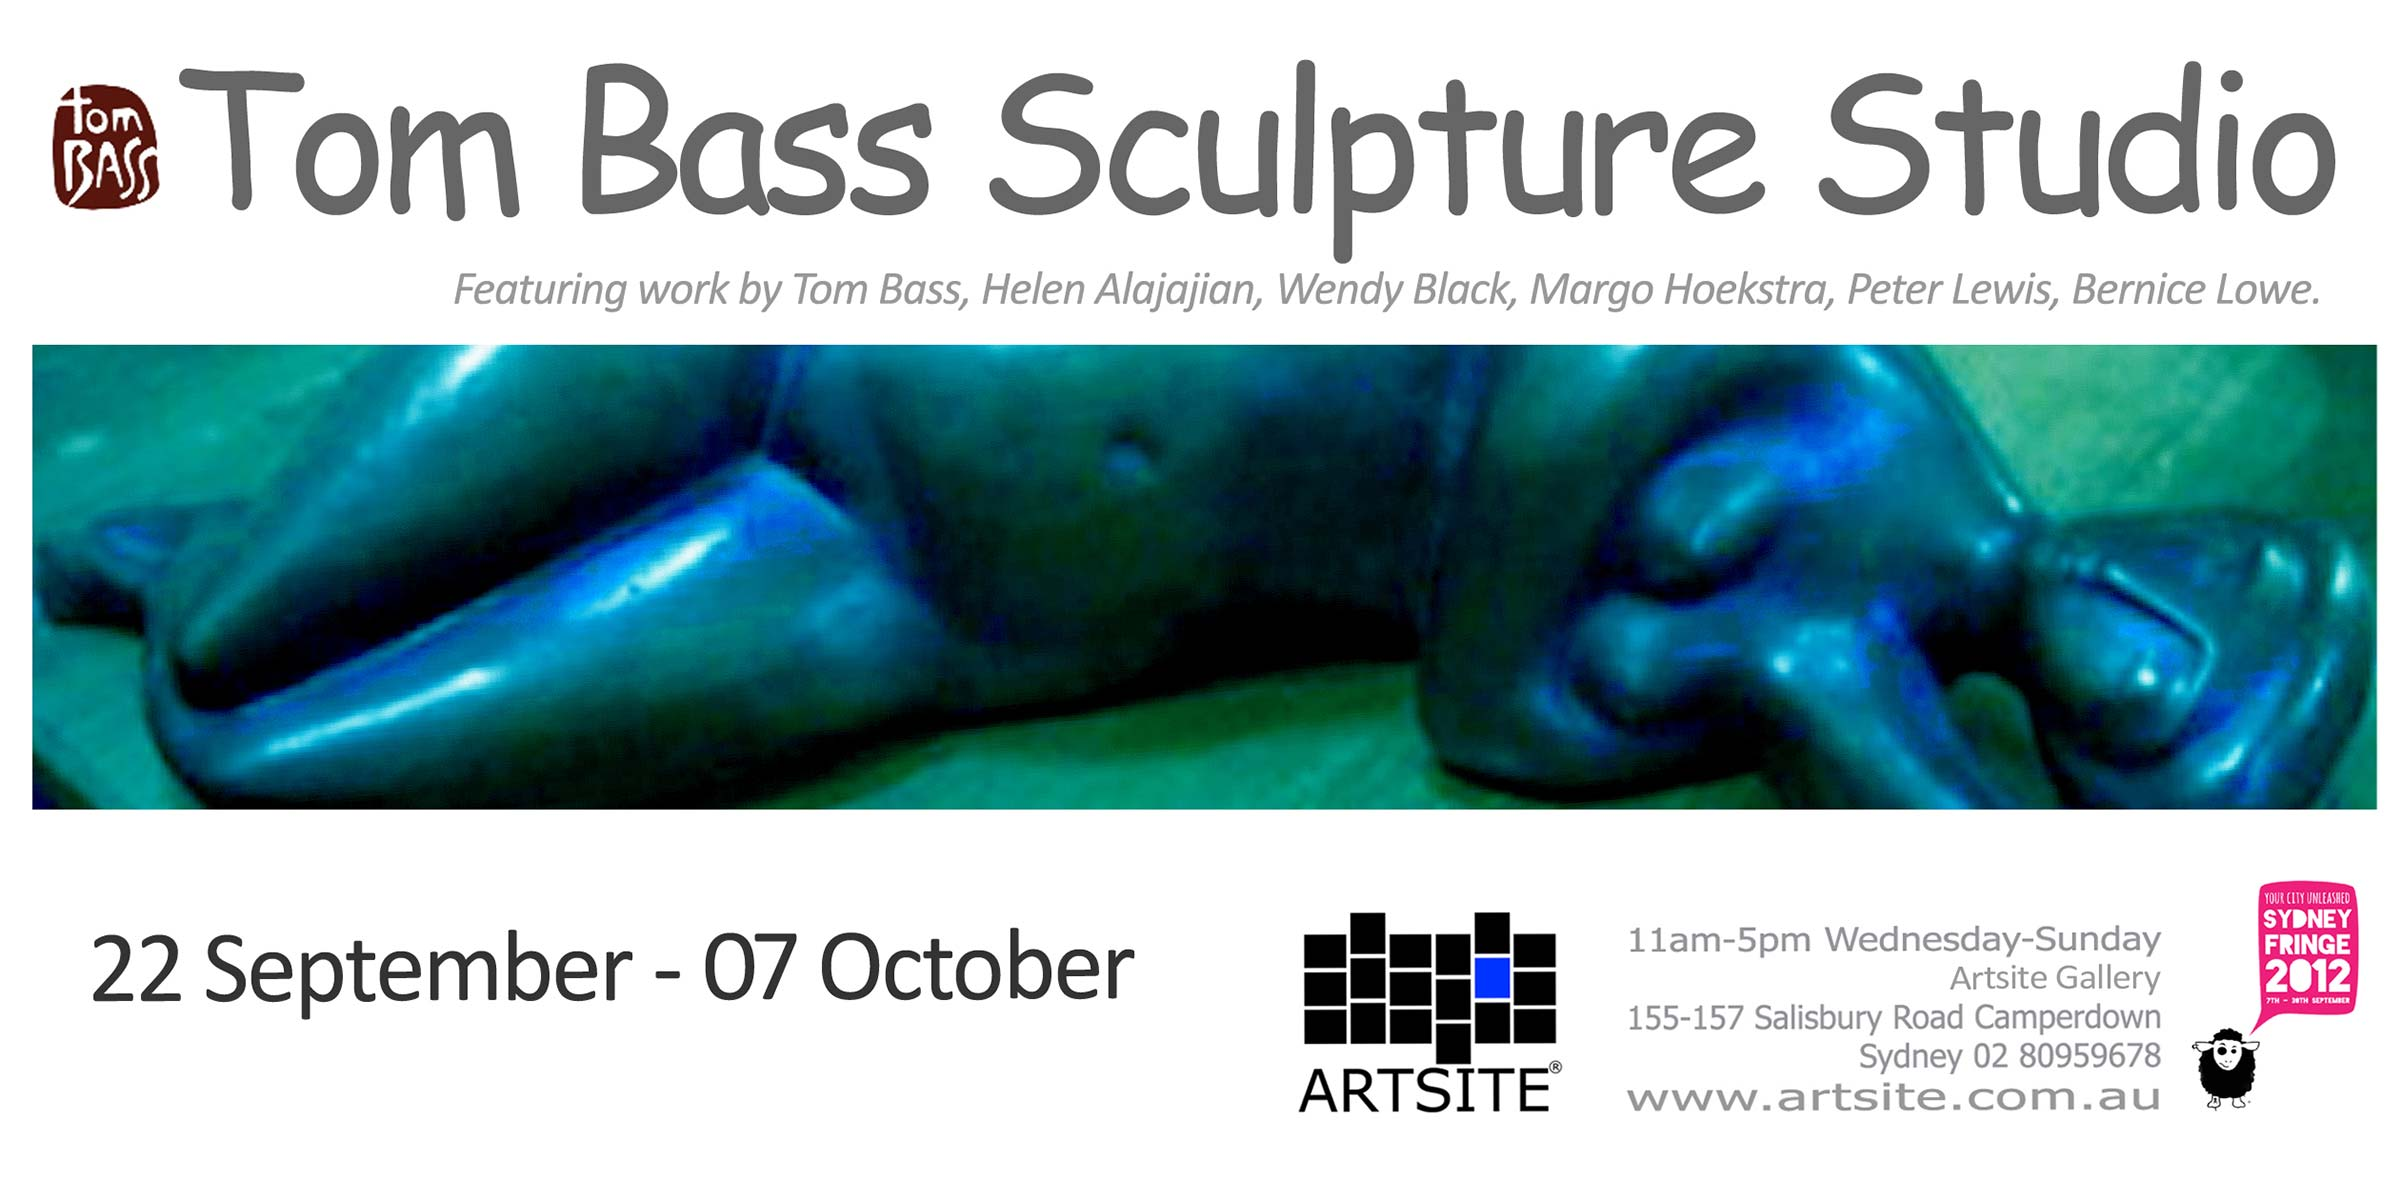 Works by Tom Bass and Sculptors of the Tom Bass Studio curated by Margo Hoekstra. Artsite Gallery 22 September - 07 October 2012.